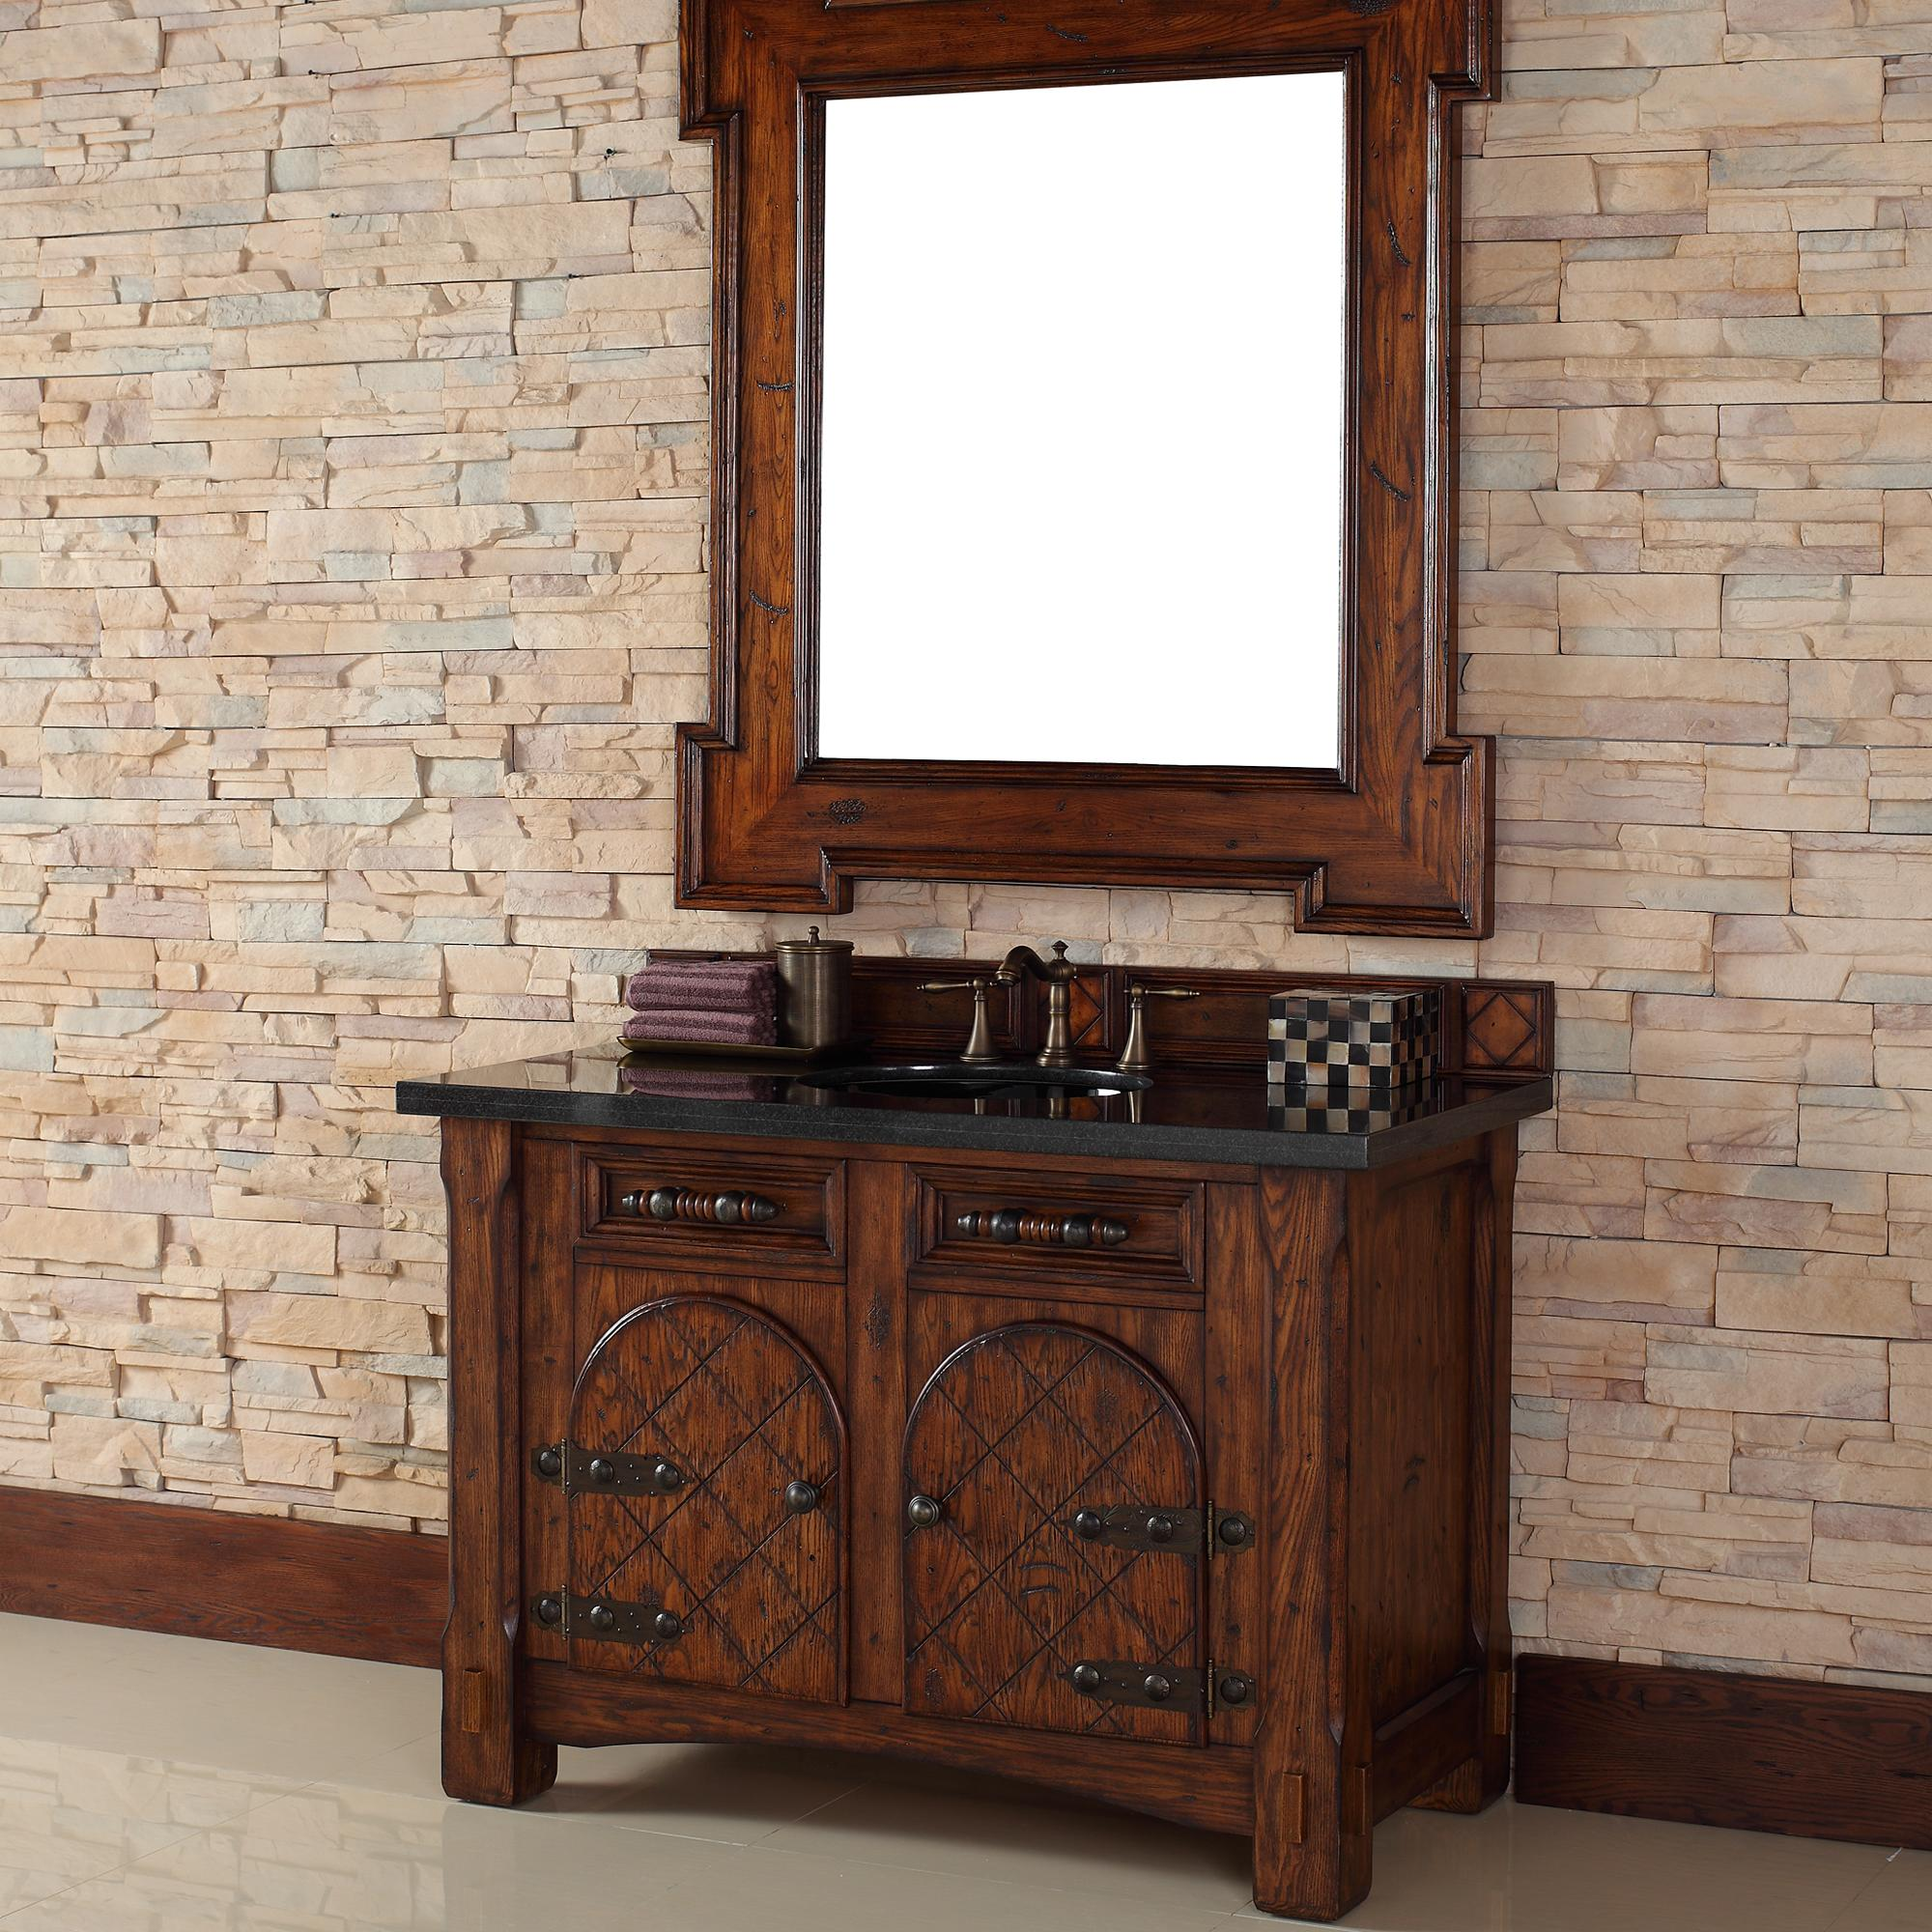 Old fashioned bathroom cabinets - Go Vintage With An Elegant Antique Vanity